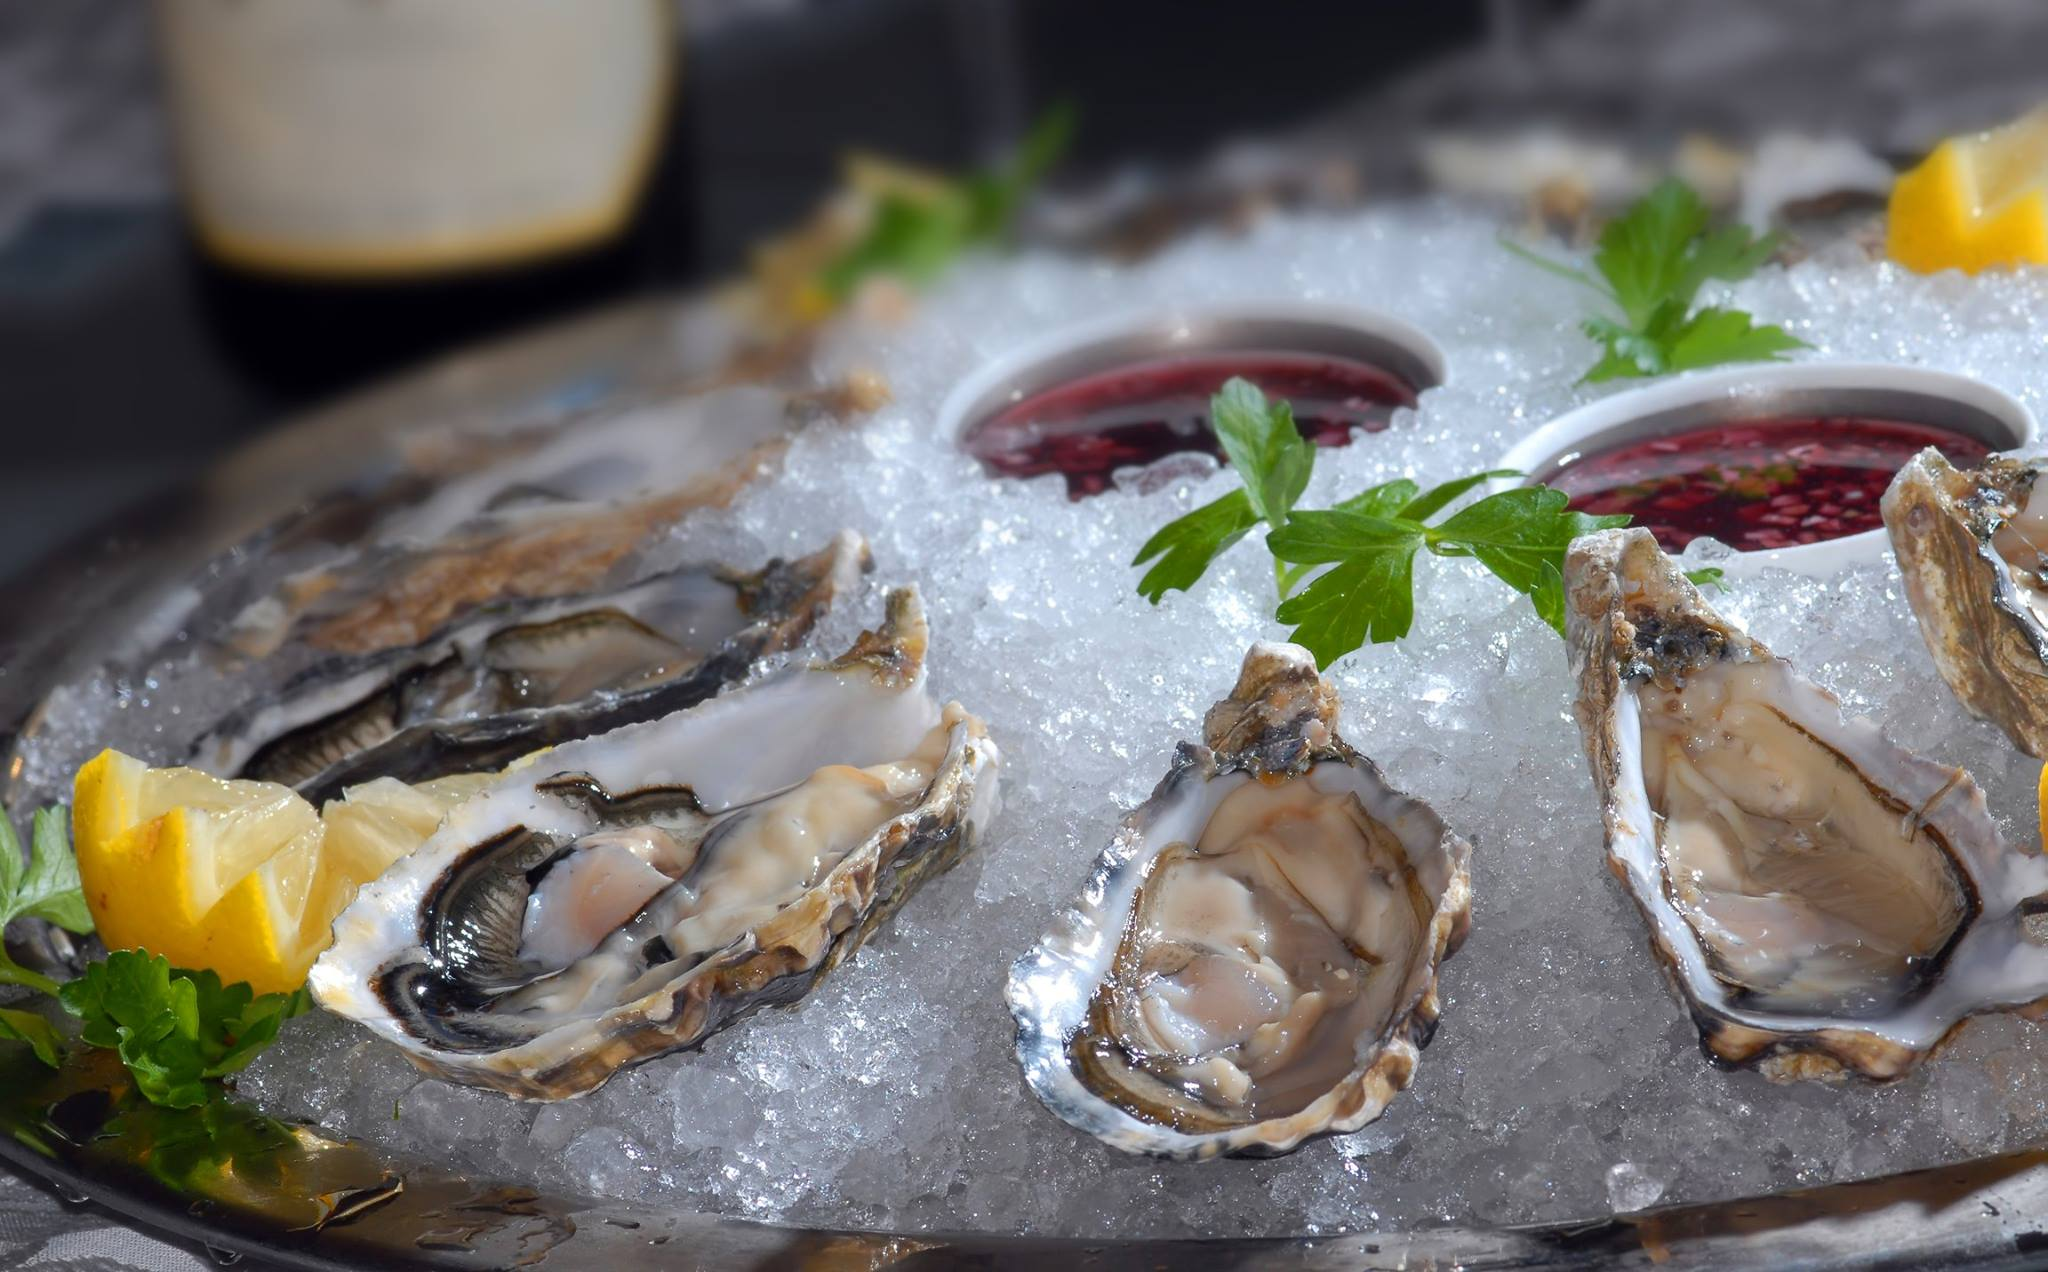 Celebrating National Oyster Day? Stop Into Spoto's In Palm Beach Gardens For Happy Hour